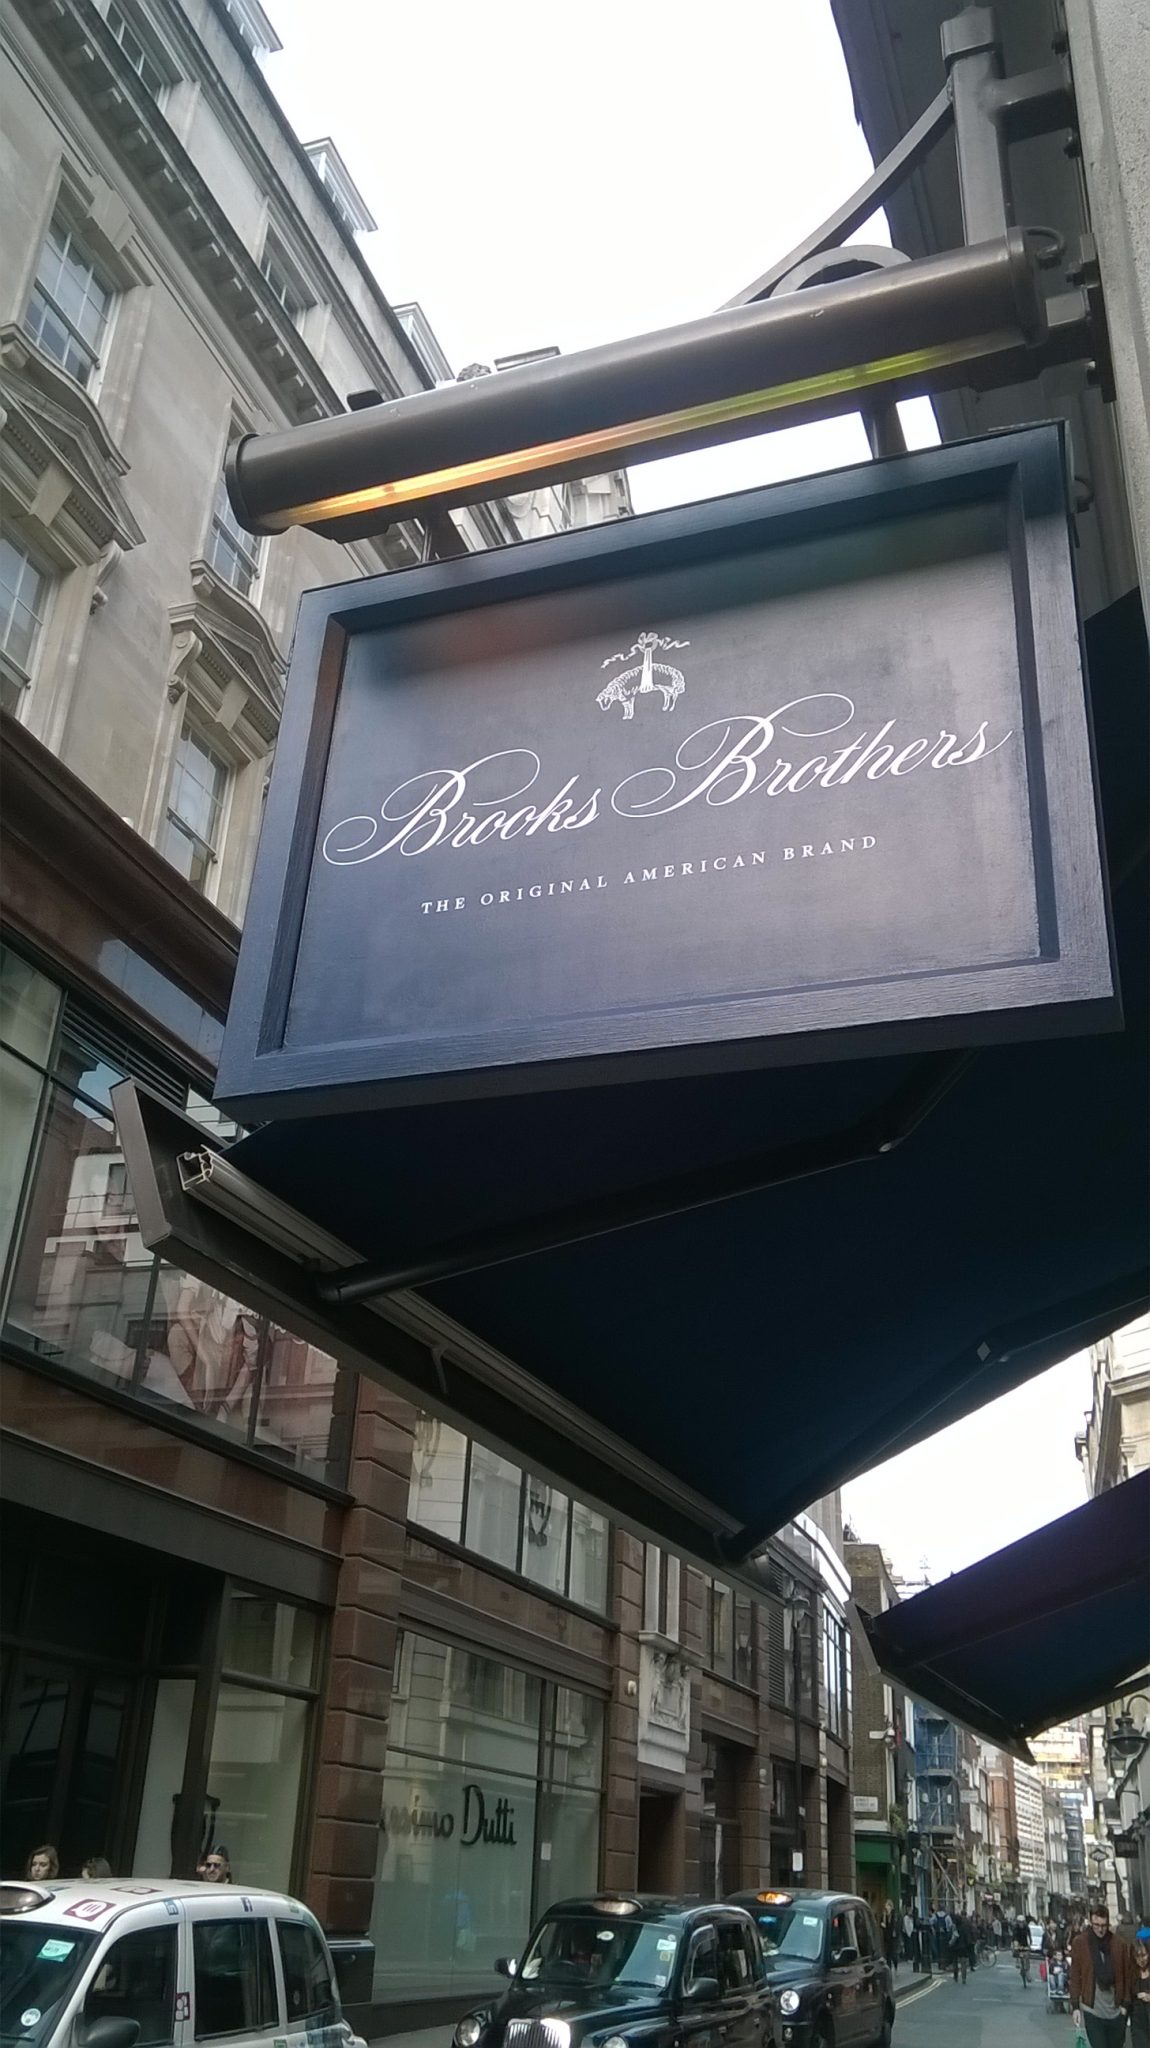 Brooks Brothers projecting Sign catches the eye of passers by & can be effective adverts for your business.Call today for a quote from E-Signs London.